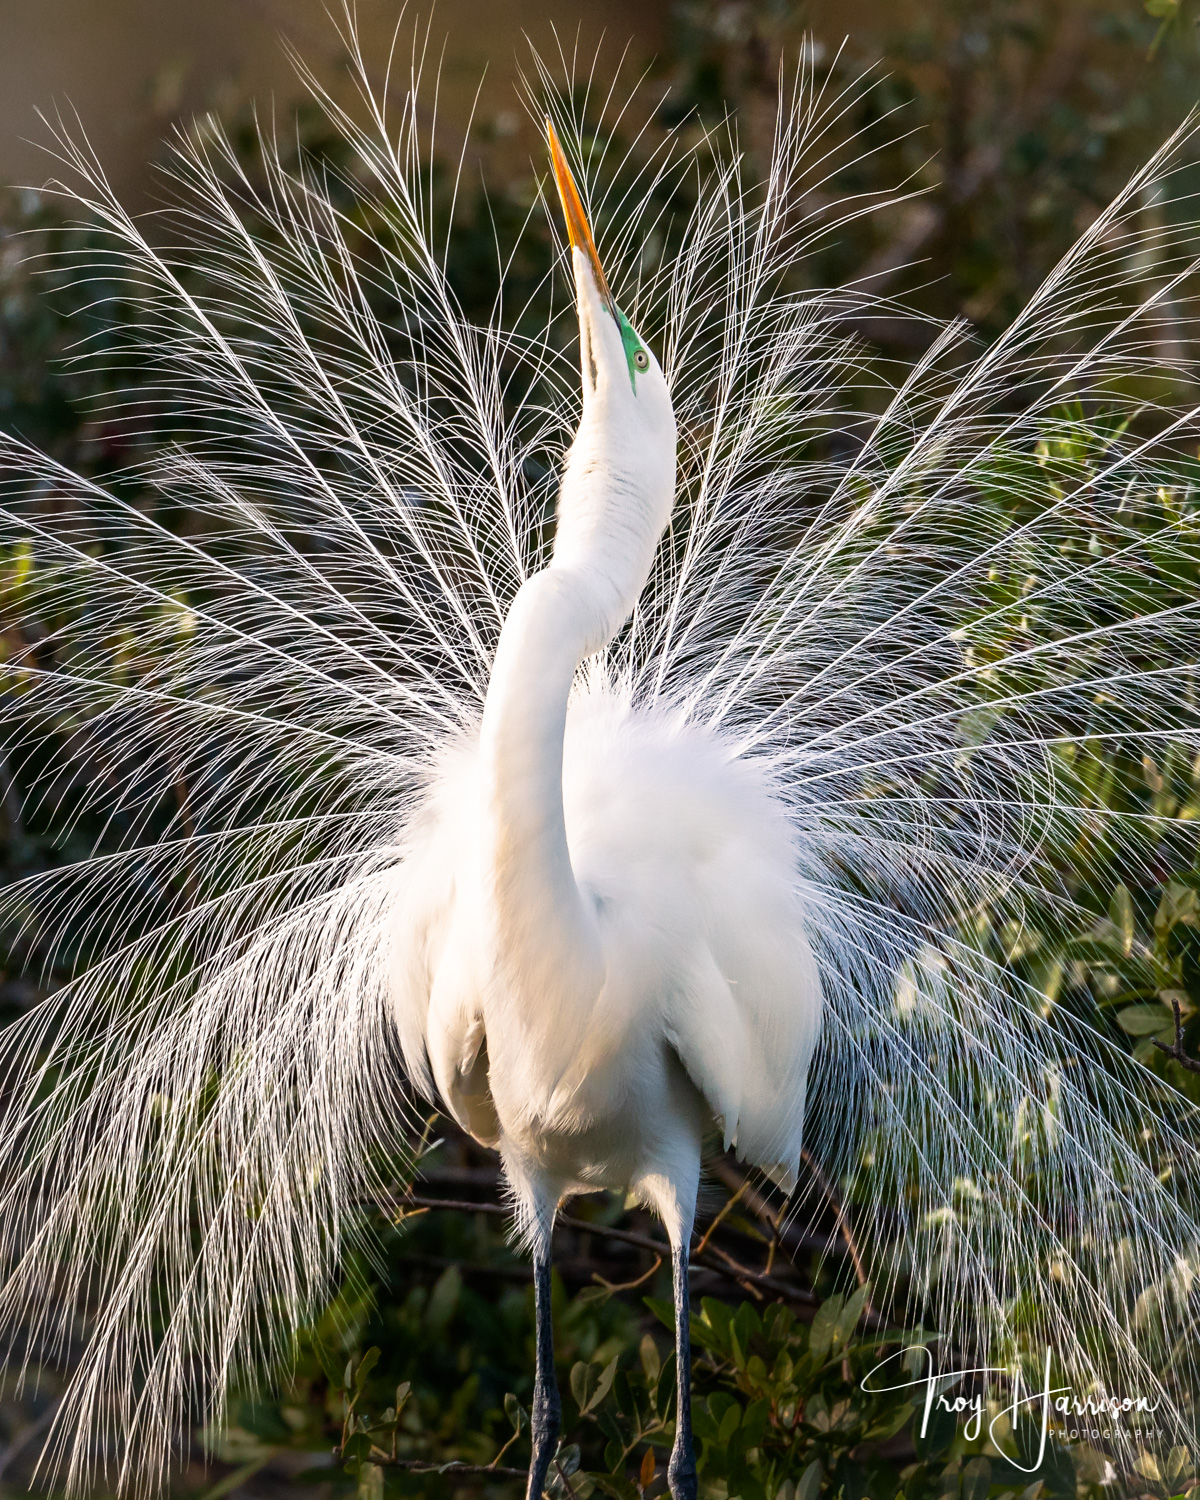 1 - Great Egret, Everglades, Jan. II 2019, img 295.jpg